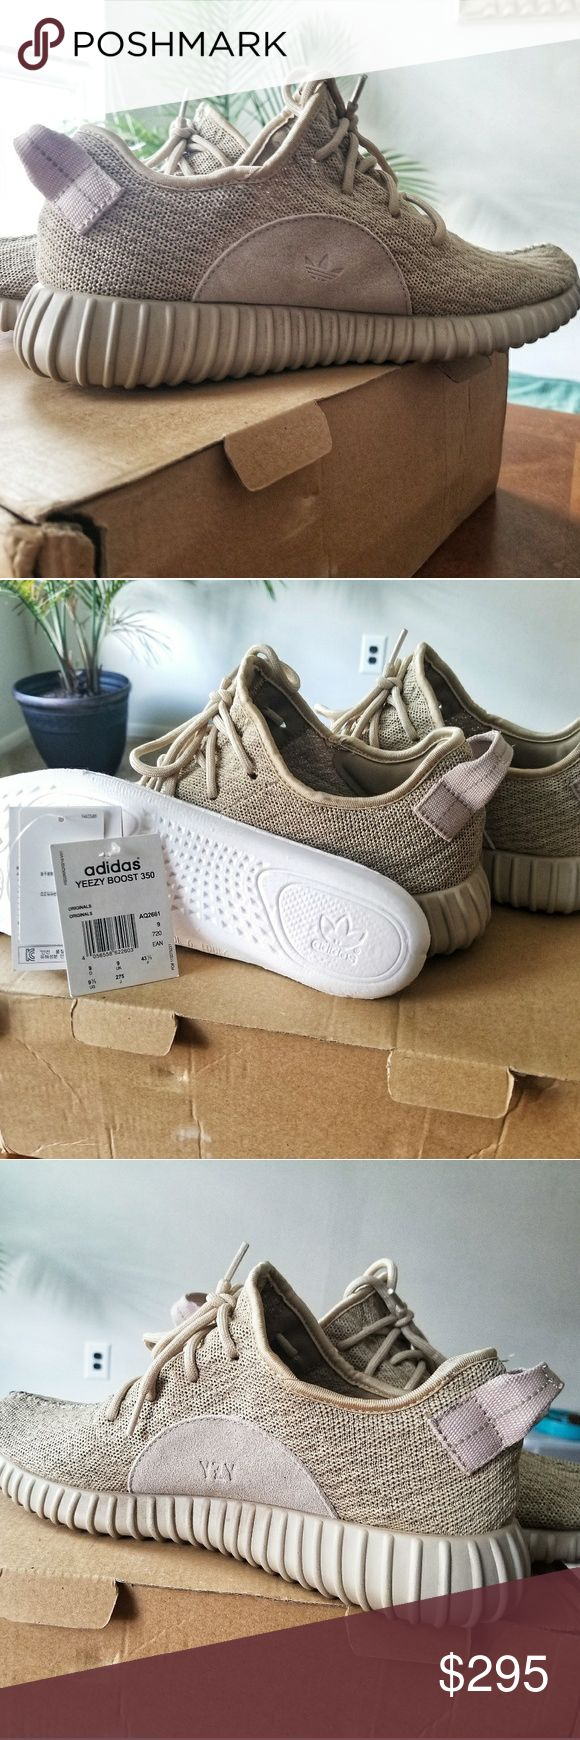 Yeezy 350 Boost Oxford Tan (US 9.5) Lightly Used Oxford Tan yeezys 350 with little wear to the bottom souls but everywhere else is in mint condition(no scuffs, holes or stains). I taped up the logo on the insoles so I wouldn't wear out the font. I have original box & tags but no Receipt as these were a gift. I know they're  used so I can work with price. Very excellent used condition. No trades. If you like something, please use the offer button, I may not respond to offers in comments. I…